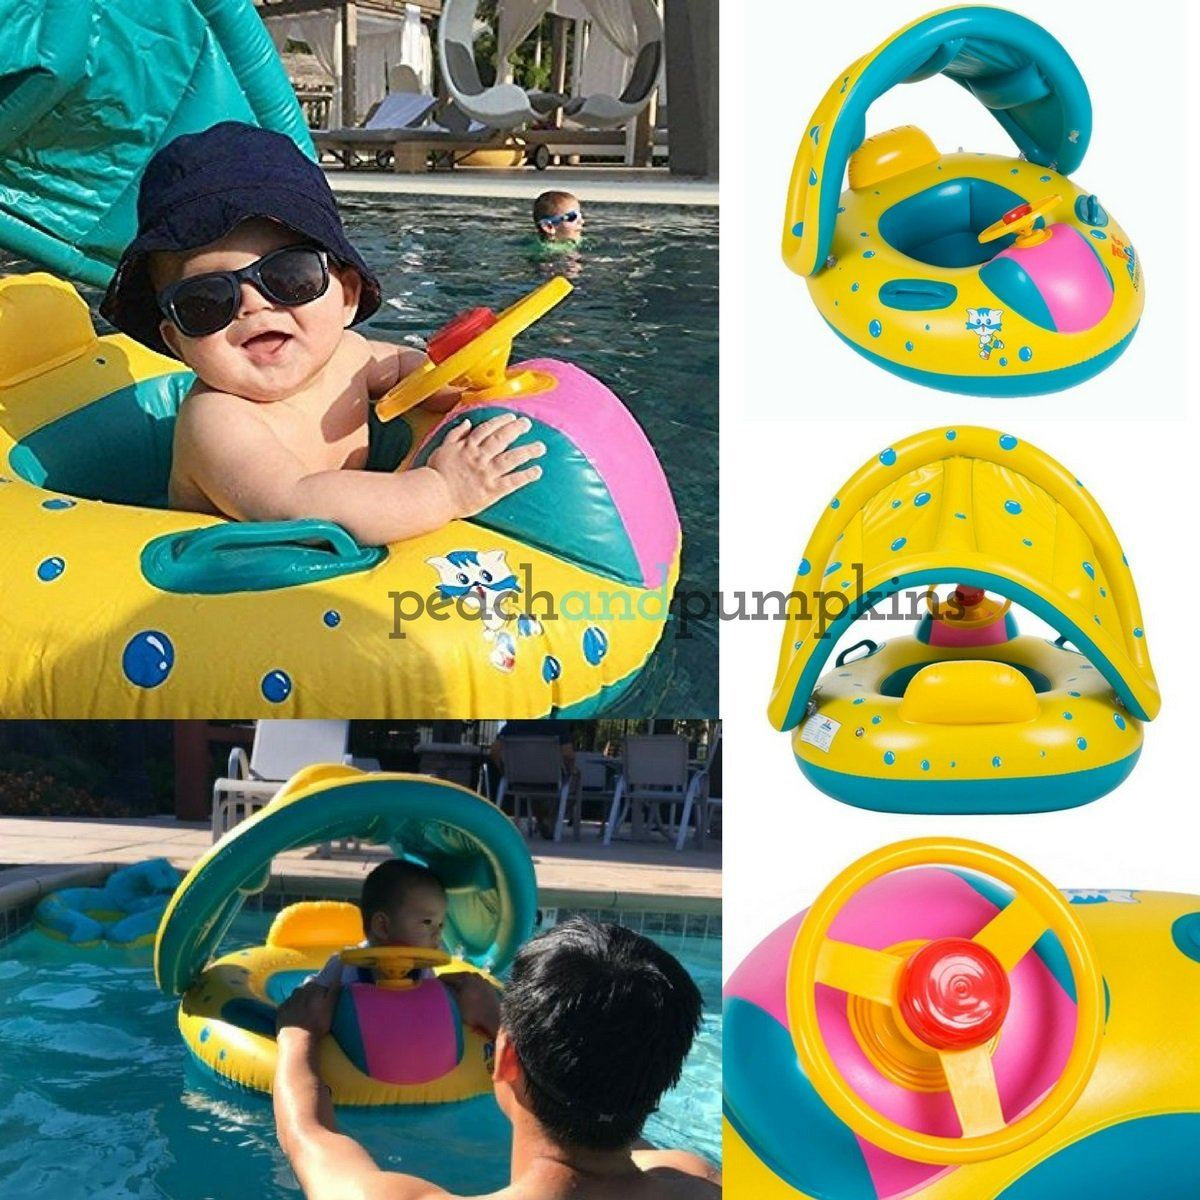 Backpacks & Carriers Water Sling Double Ring Pool Quick Dry Wrap Backpack Daily Mesh Child Beach Baby Carrier Swimming Non Slip Accessories